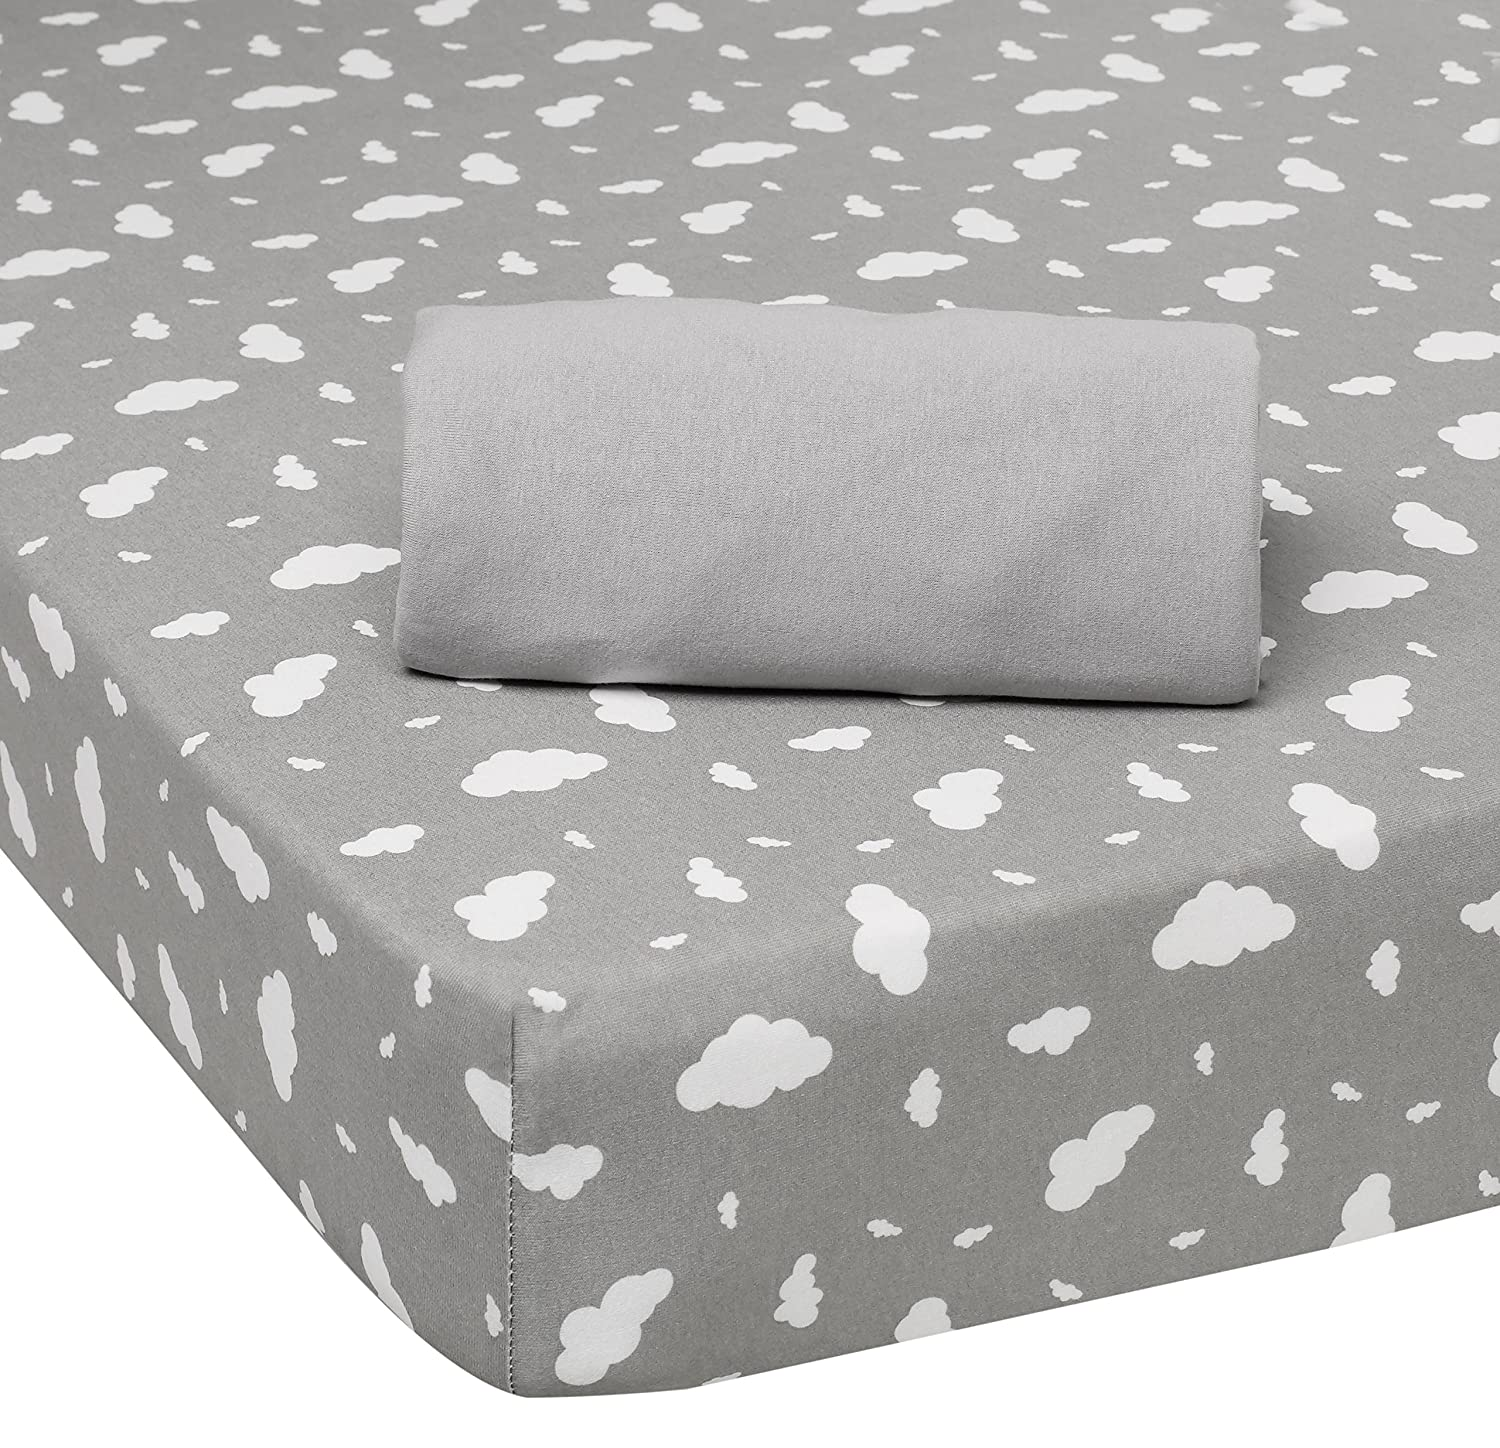 Moda Design Pouf.Moda De Casa Clouds Sheet Pair Cot Bed Grey Cotton 140 X